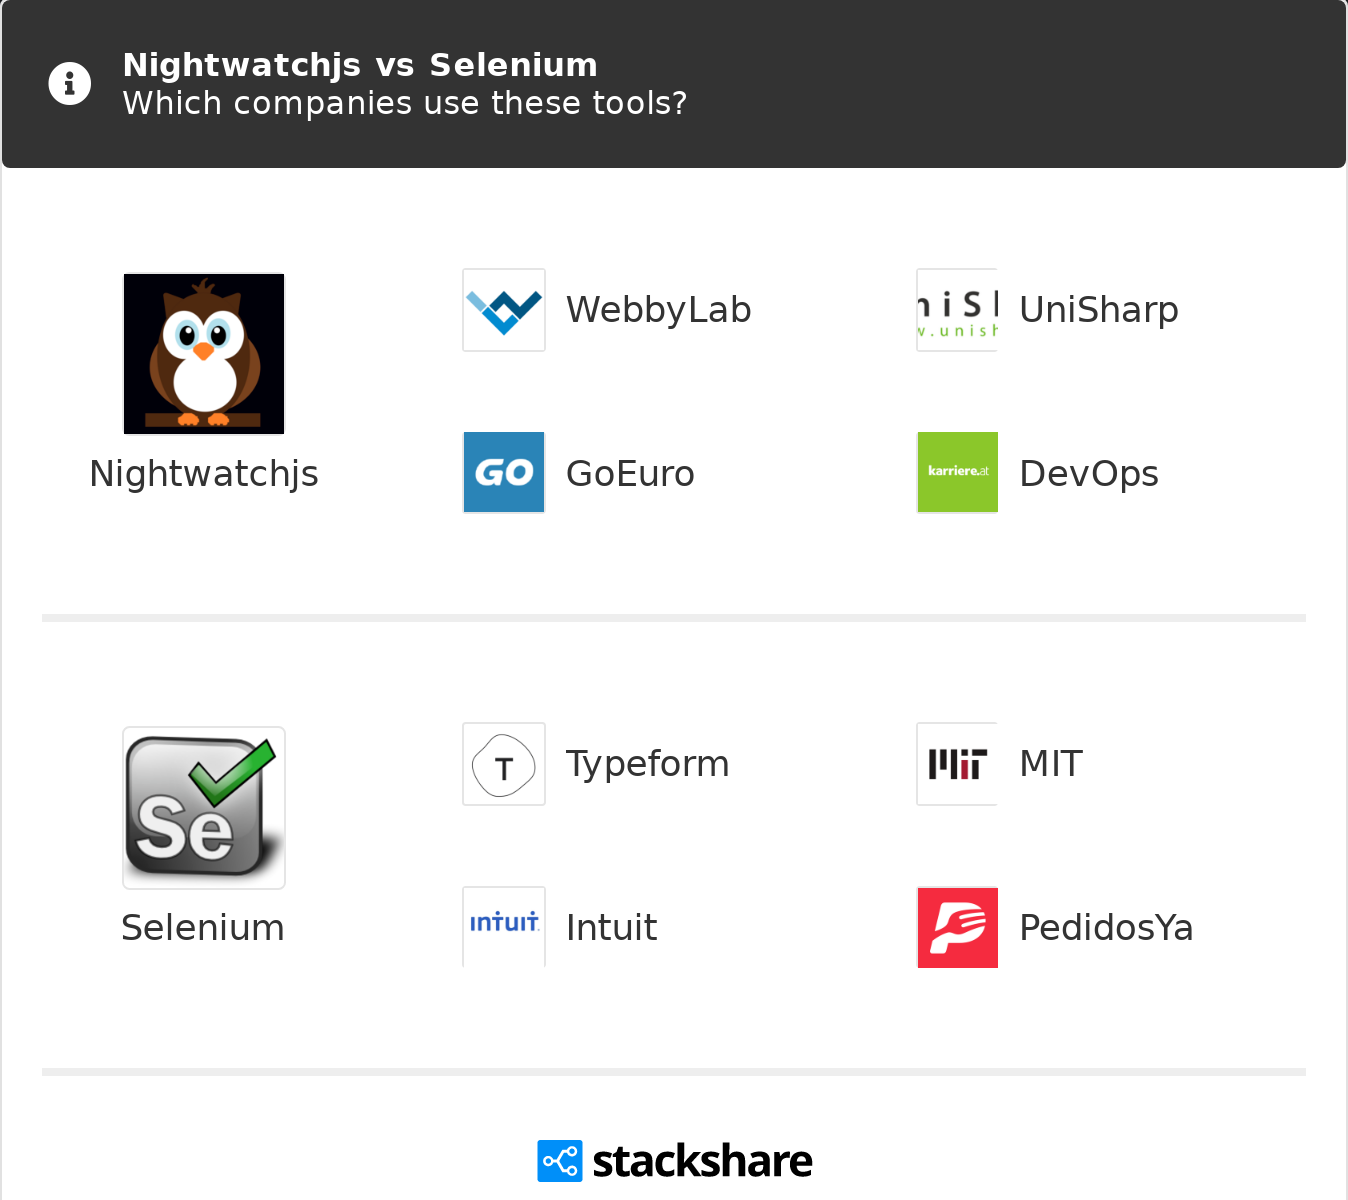 Nightwatchjs vs Selenium | What are the differences?